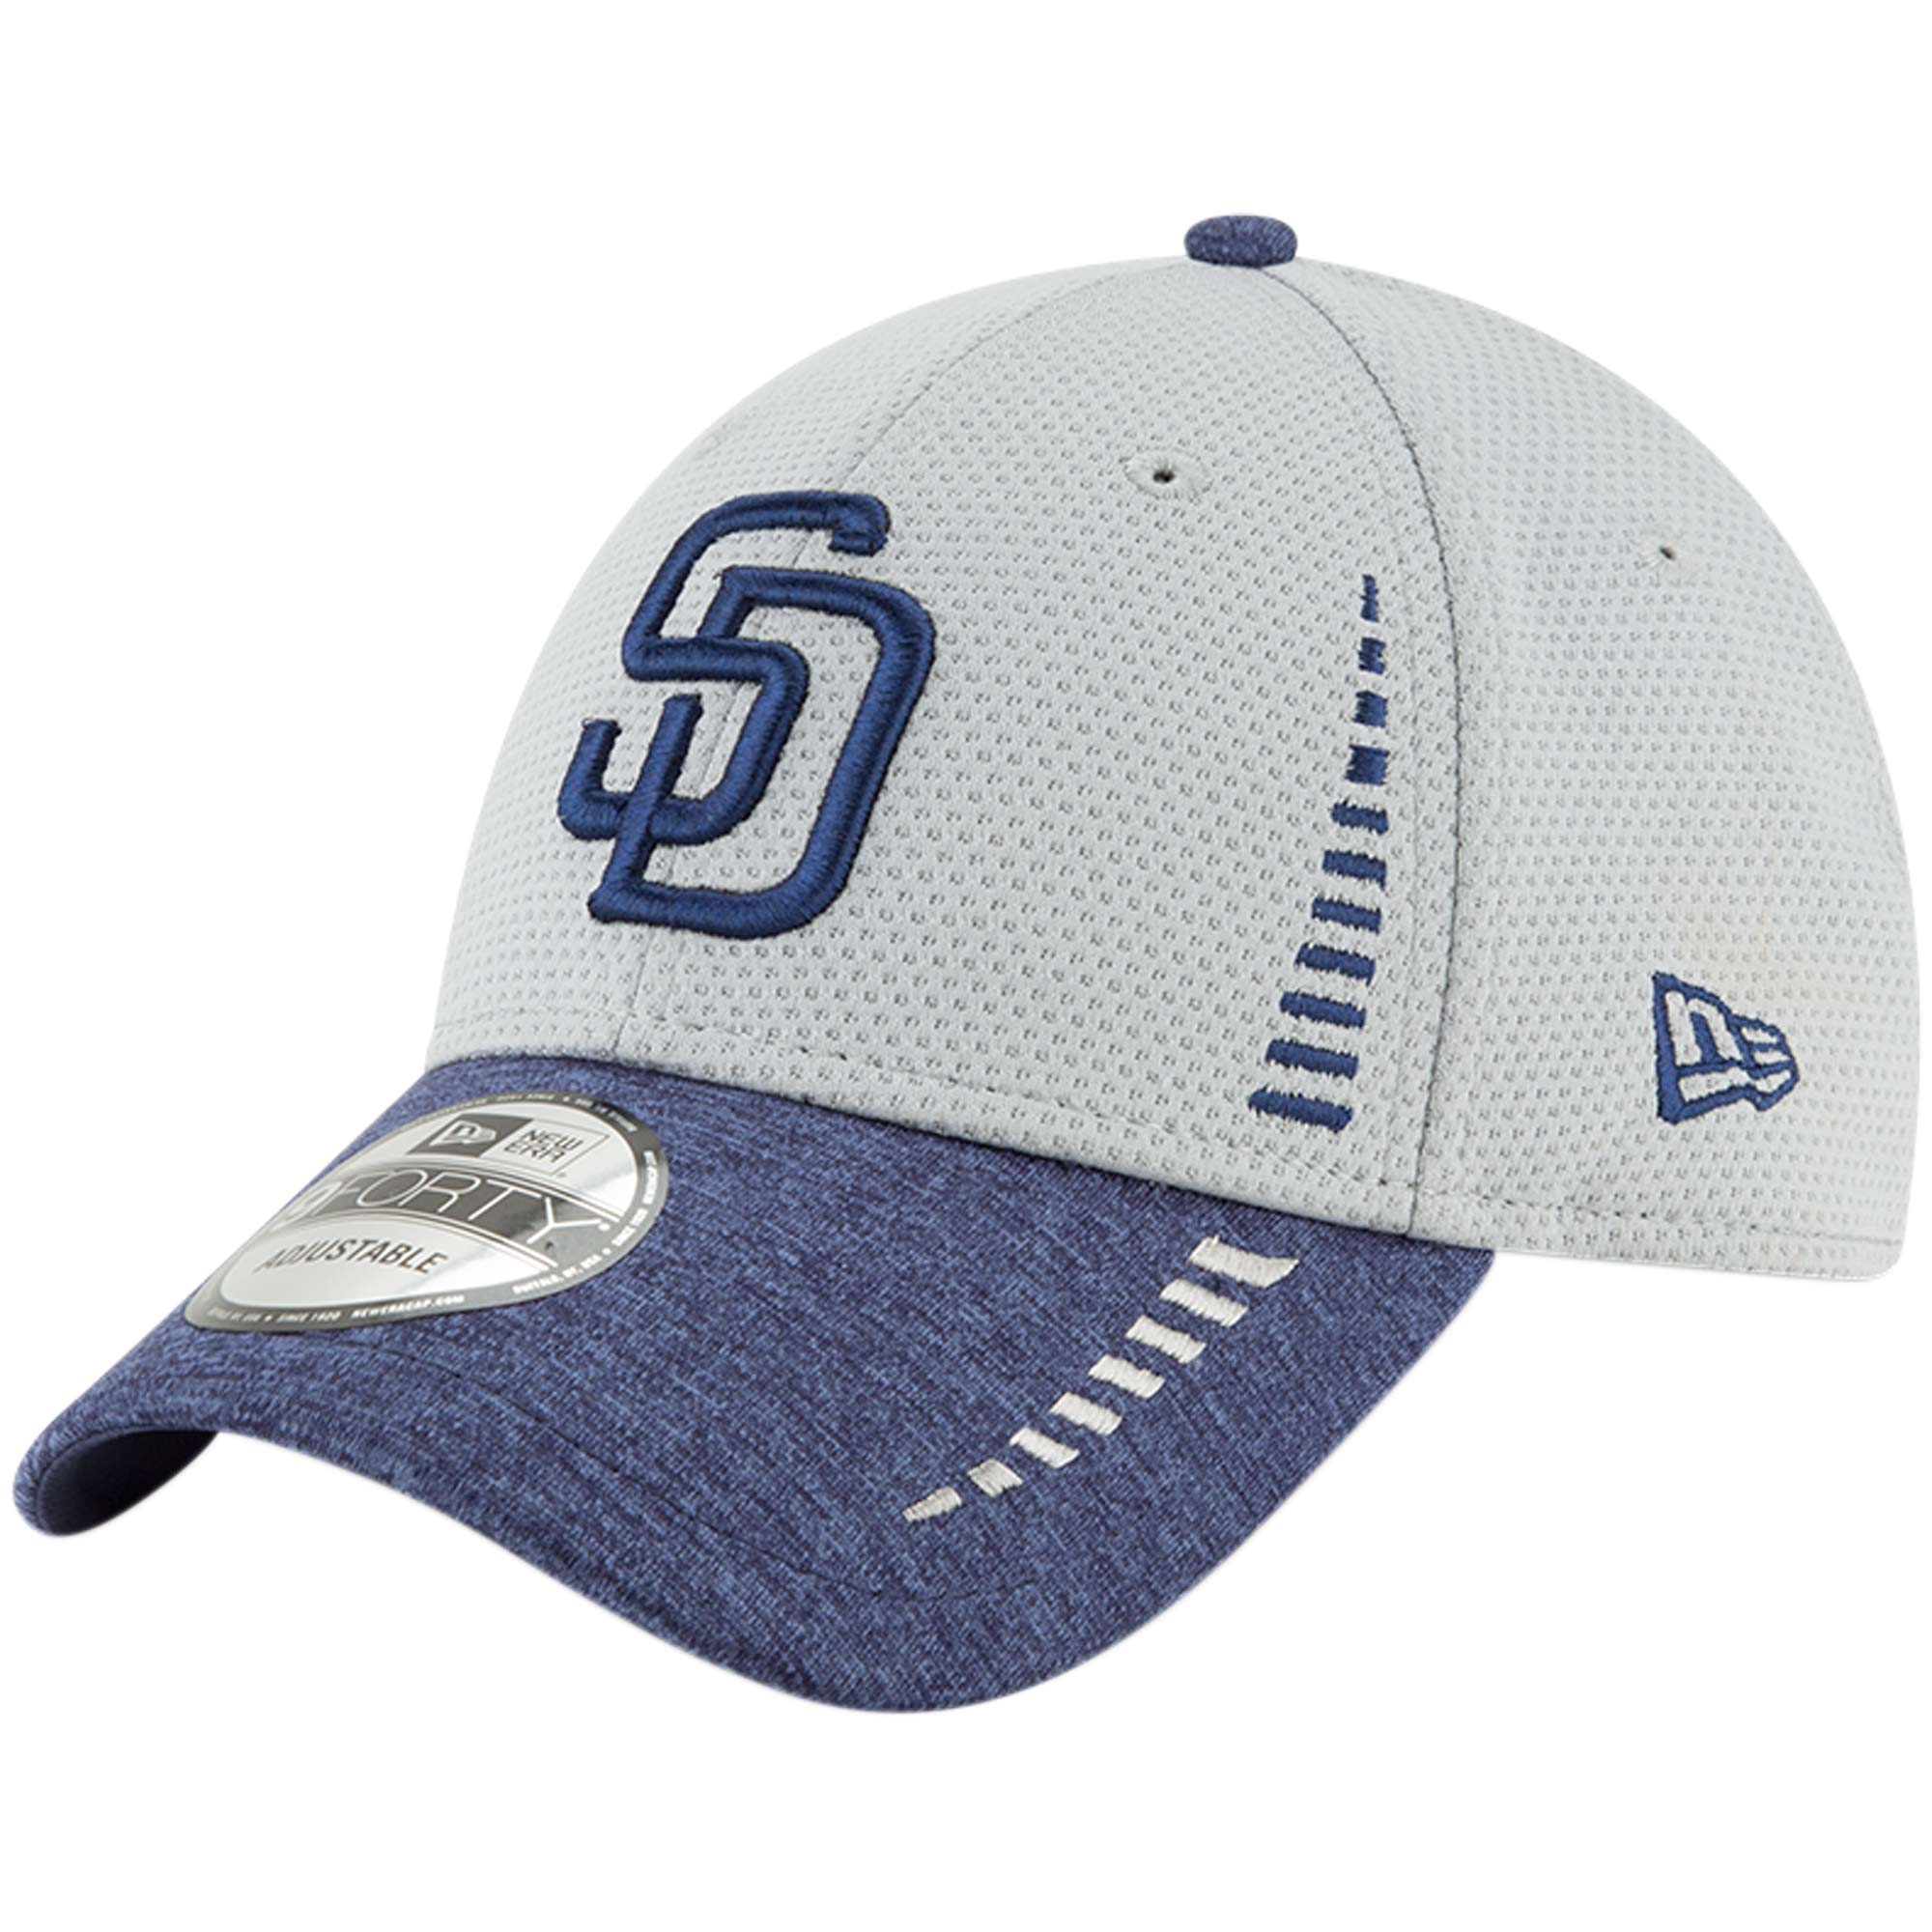 San Diego Padres New Era Speed Tech 9FORTY Adjustable Hat - Gray - OSFA